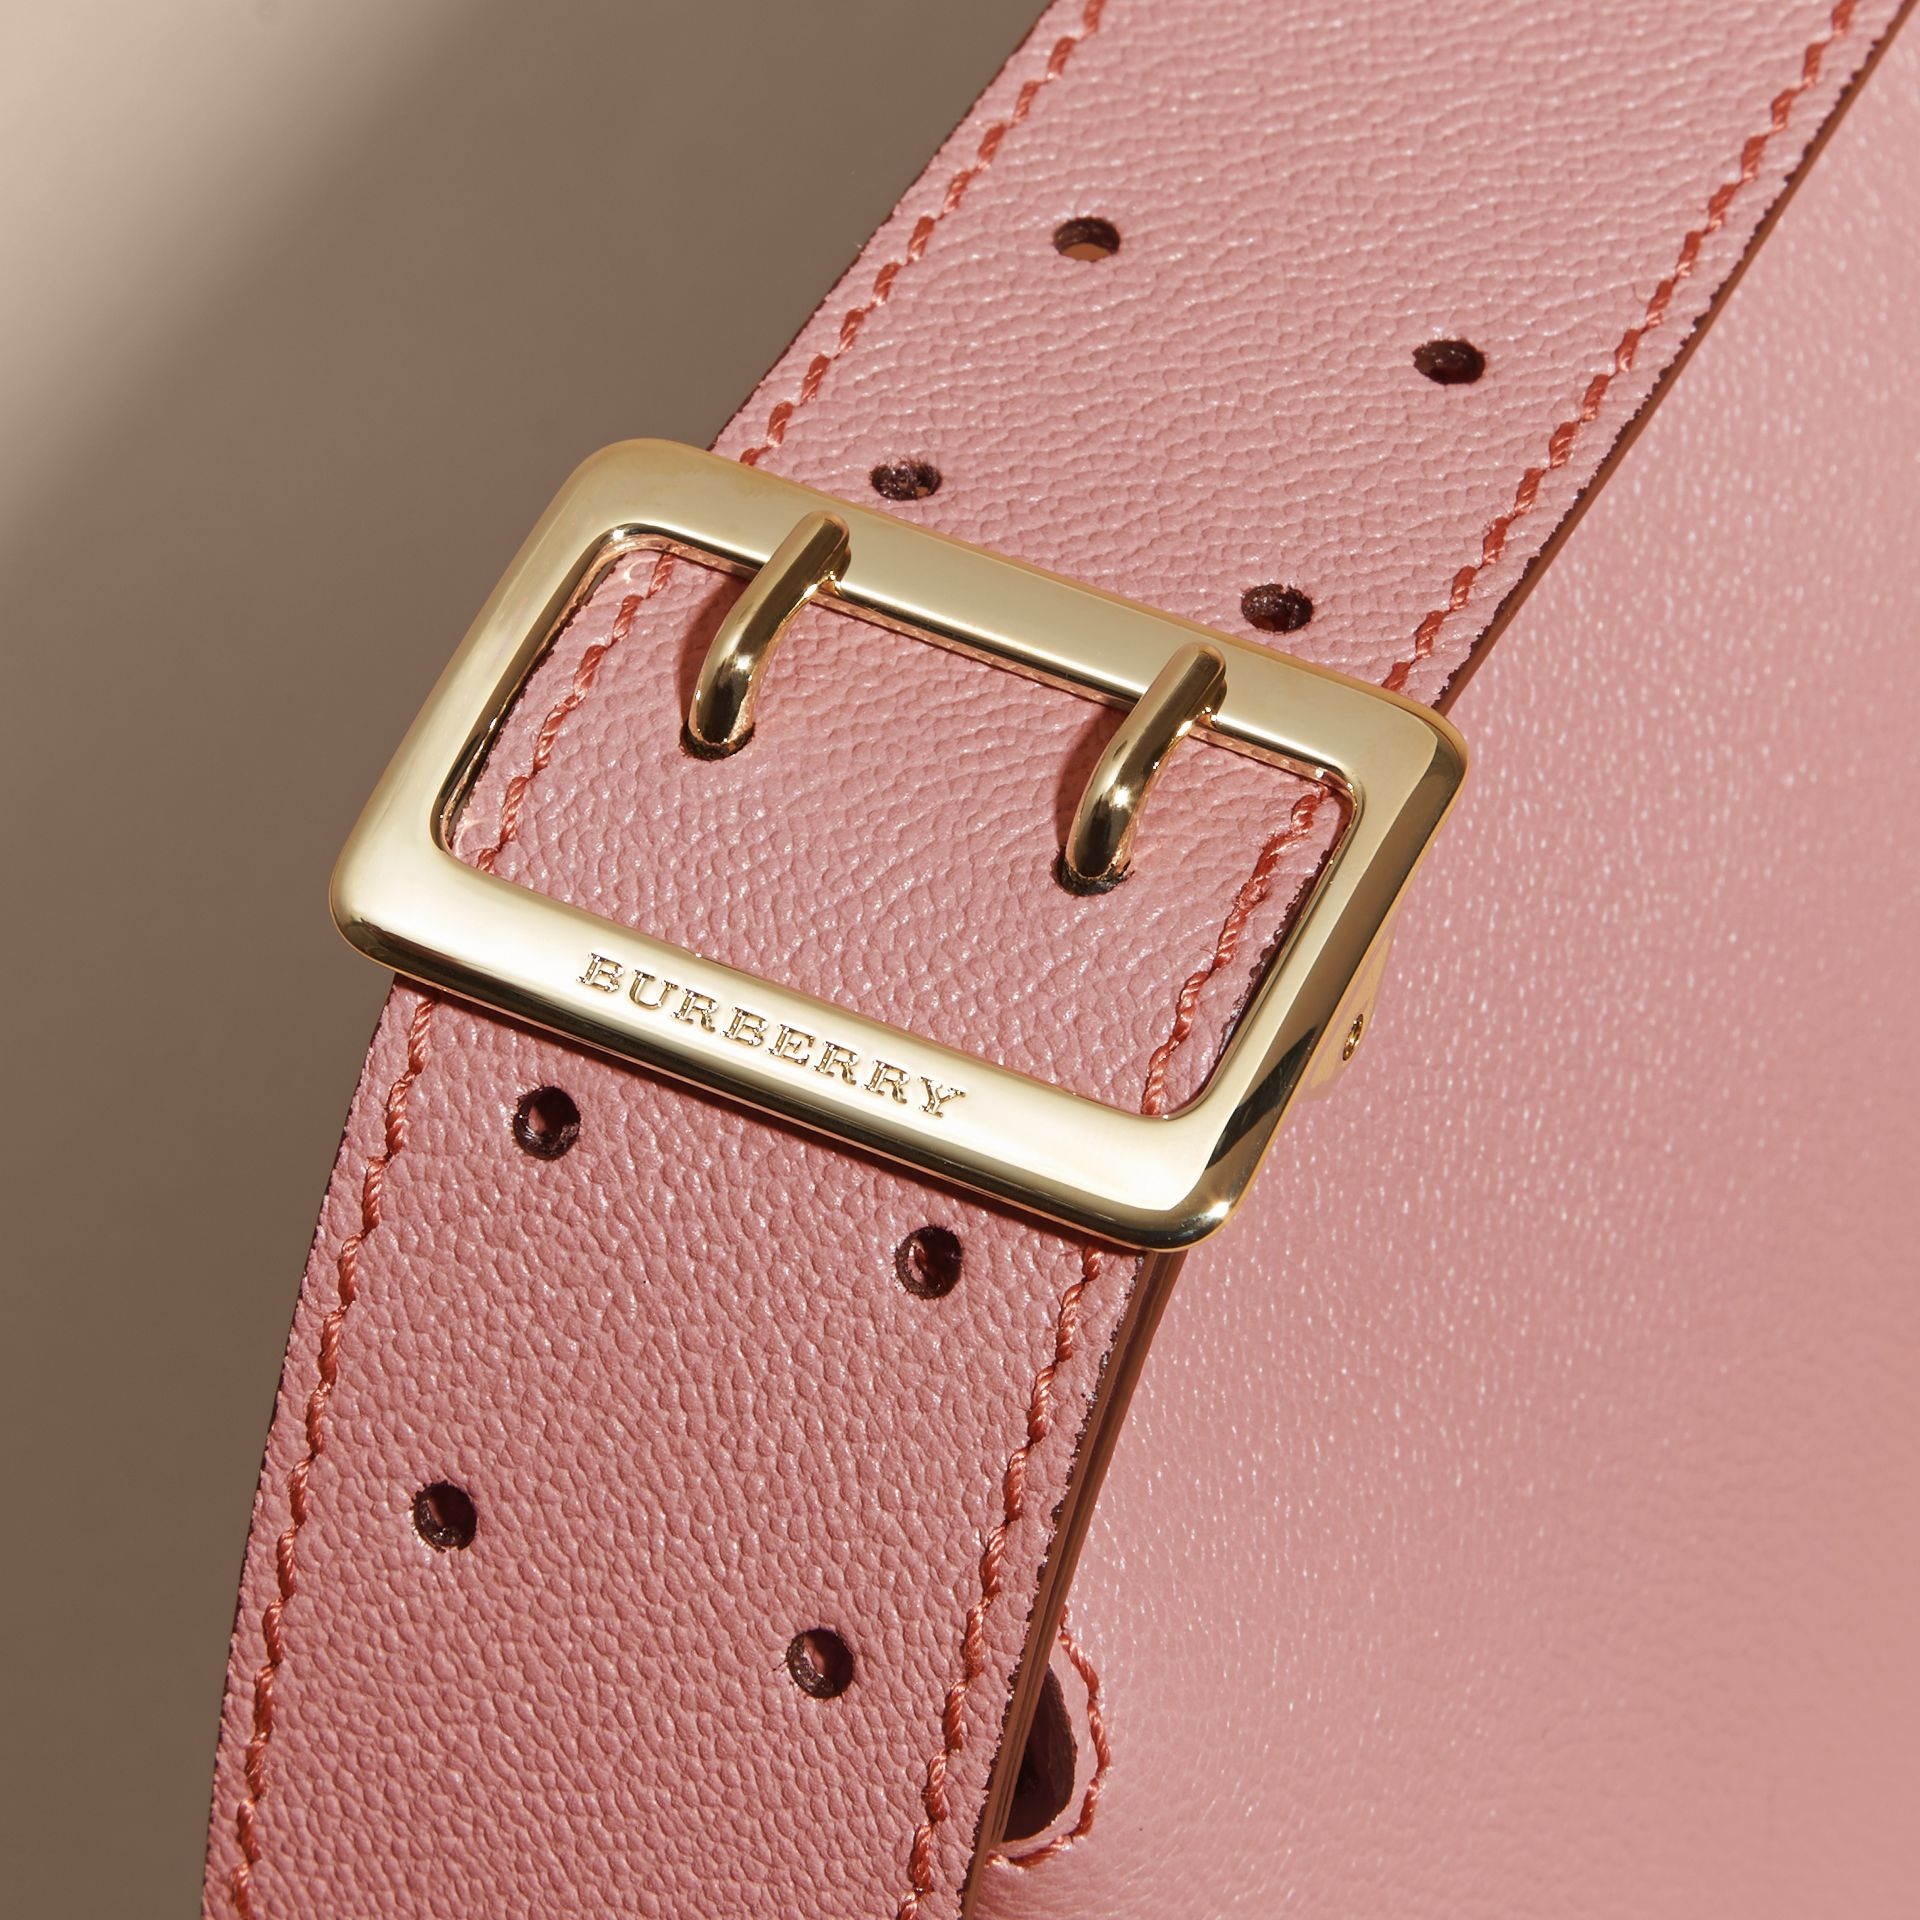 Buckle Detail Leather Crossbody Bag Dusty Pink - gallery image 2